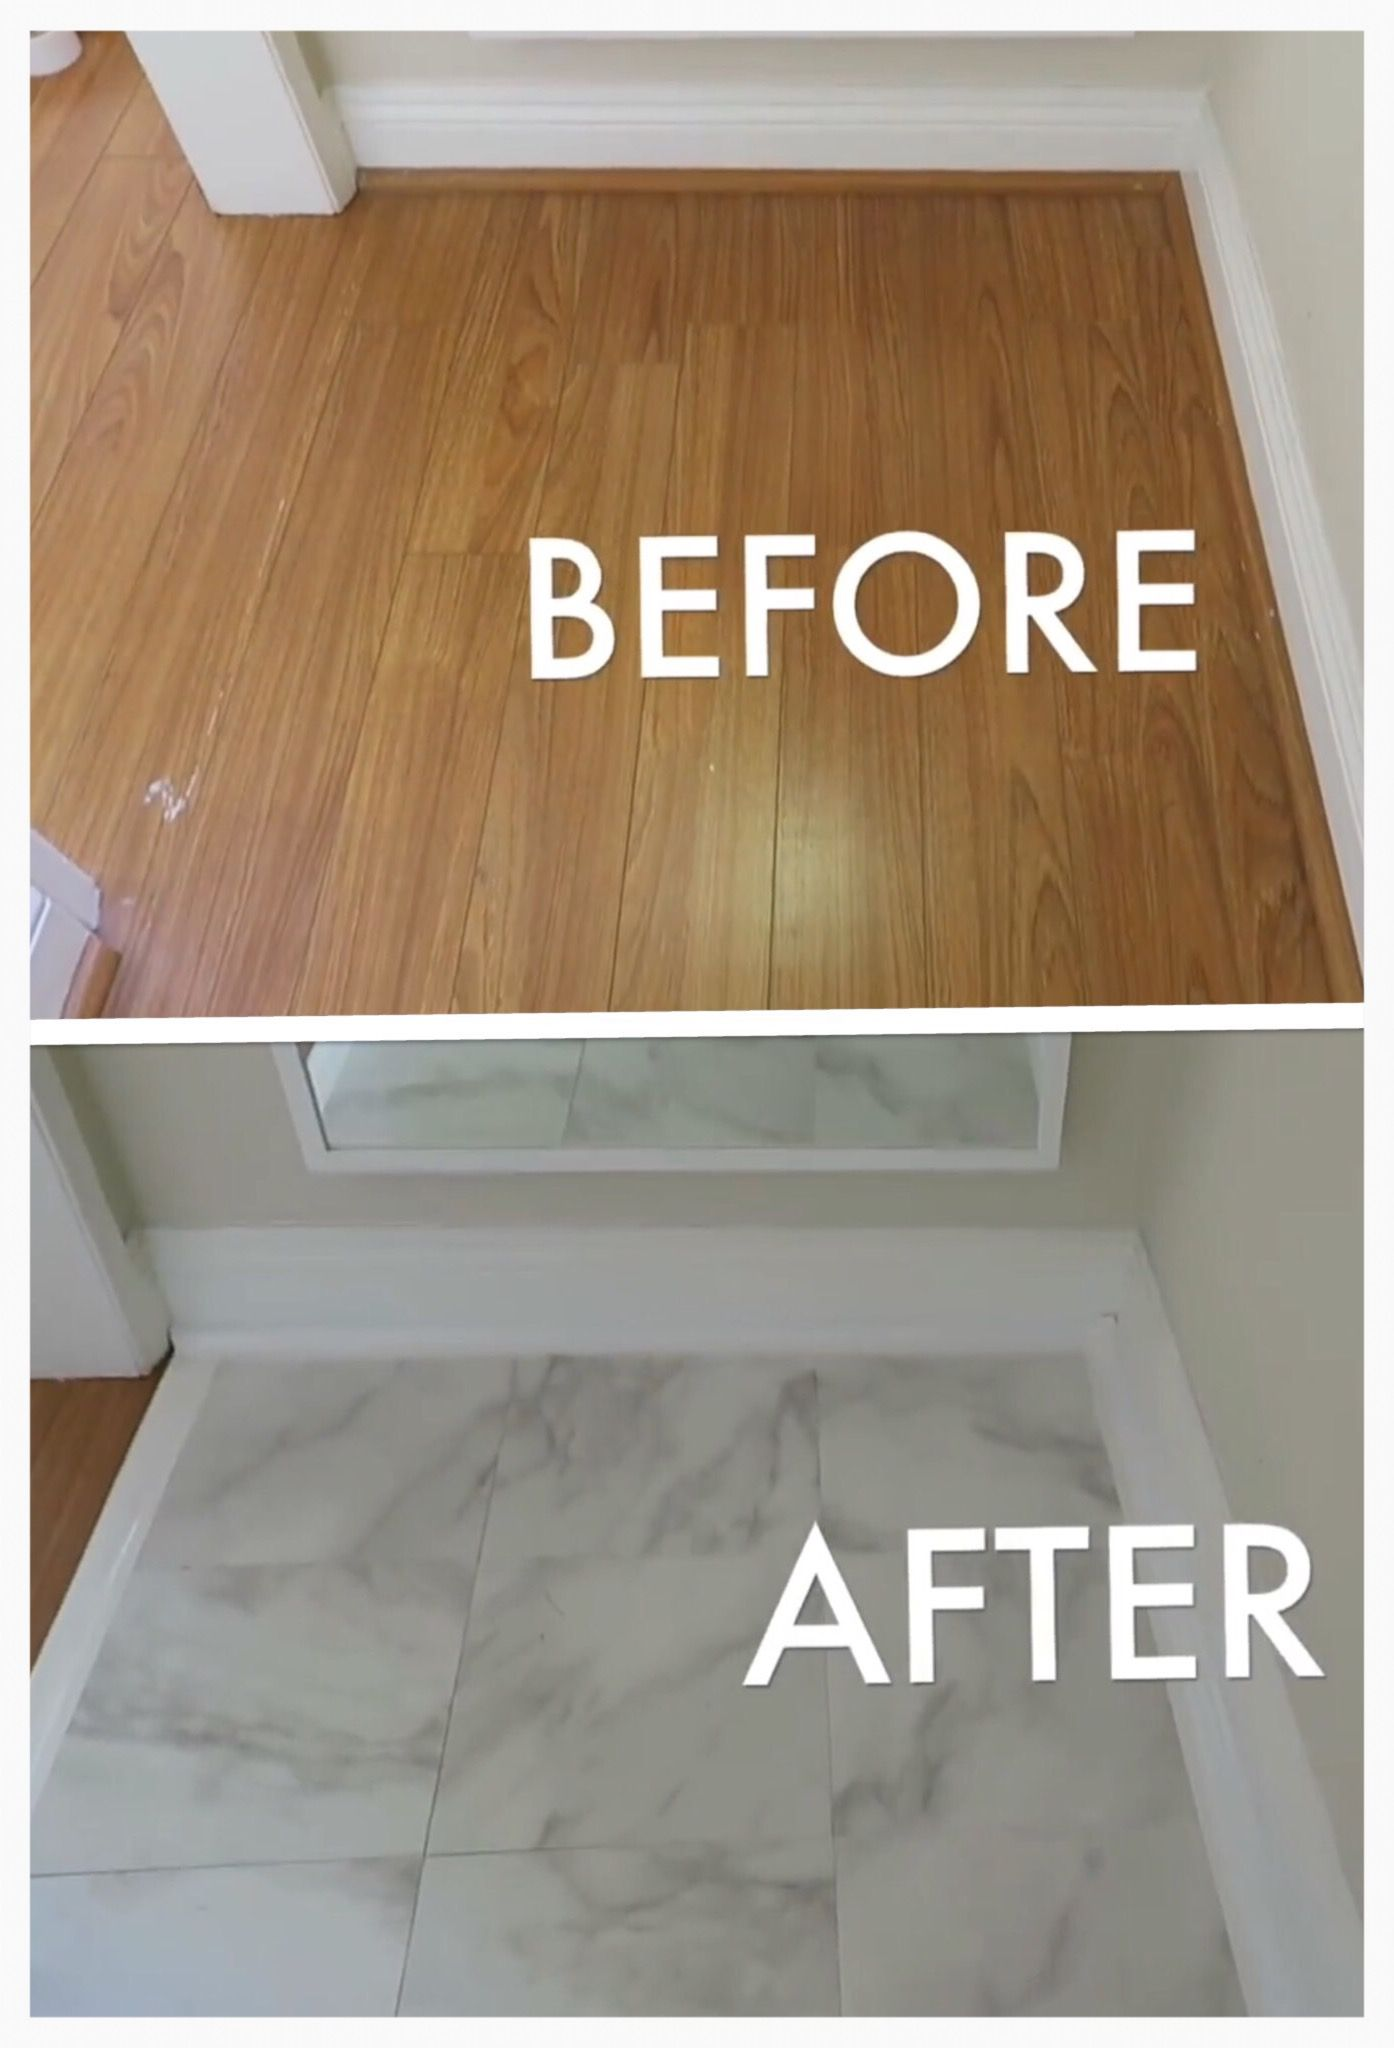 Removable Marble Floor Panel Good For Apartment You Can Get Nice Looking Flooring For Picture Areas Without Damaging The A Flooring Marble Floor White Floors